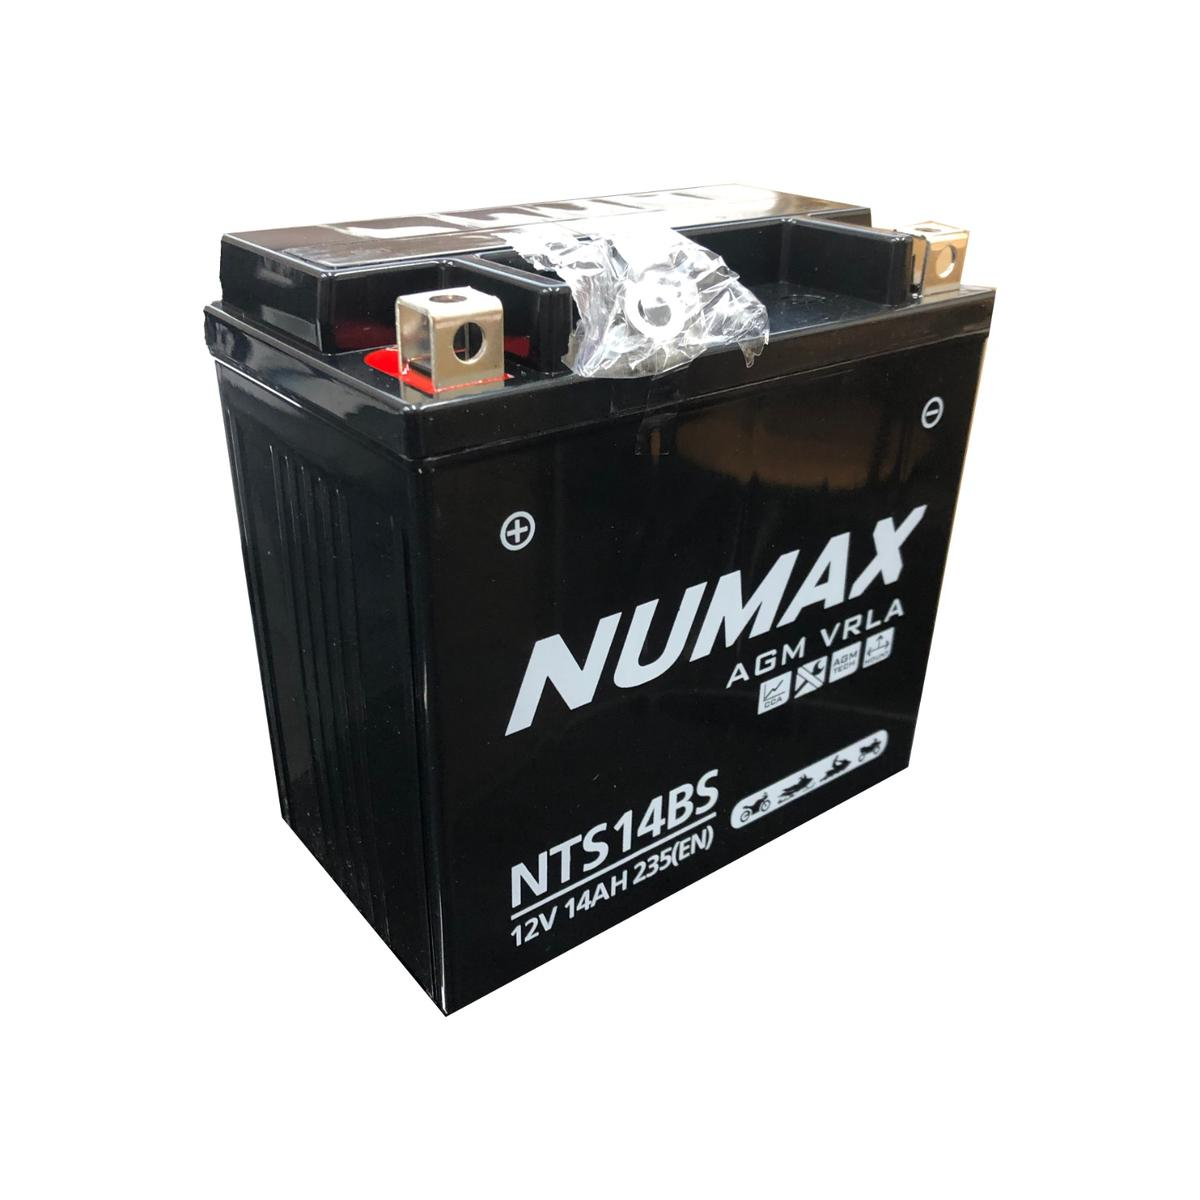 Numax NTS14BS 12v Motorbike Battery BMW 1200cc R1200GS YTX14-4